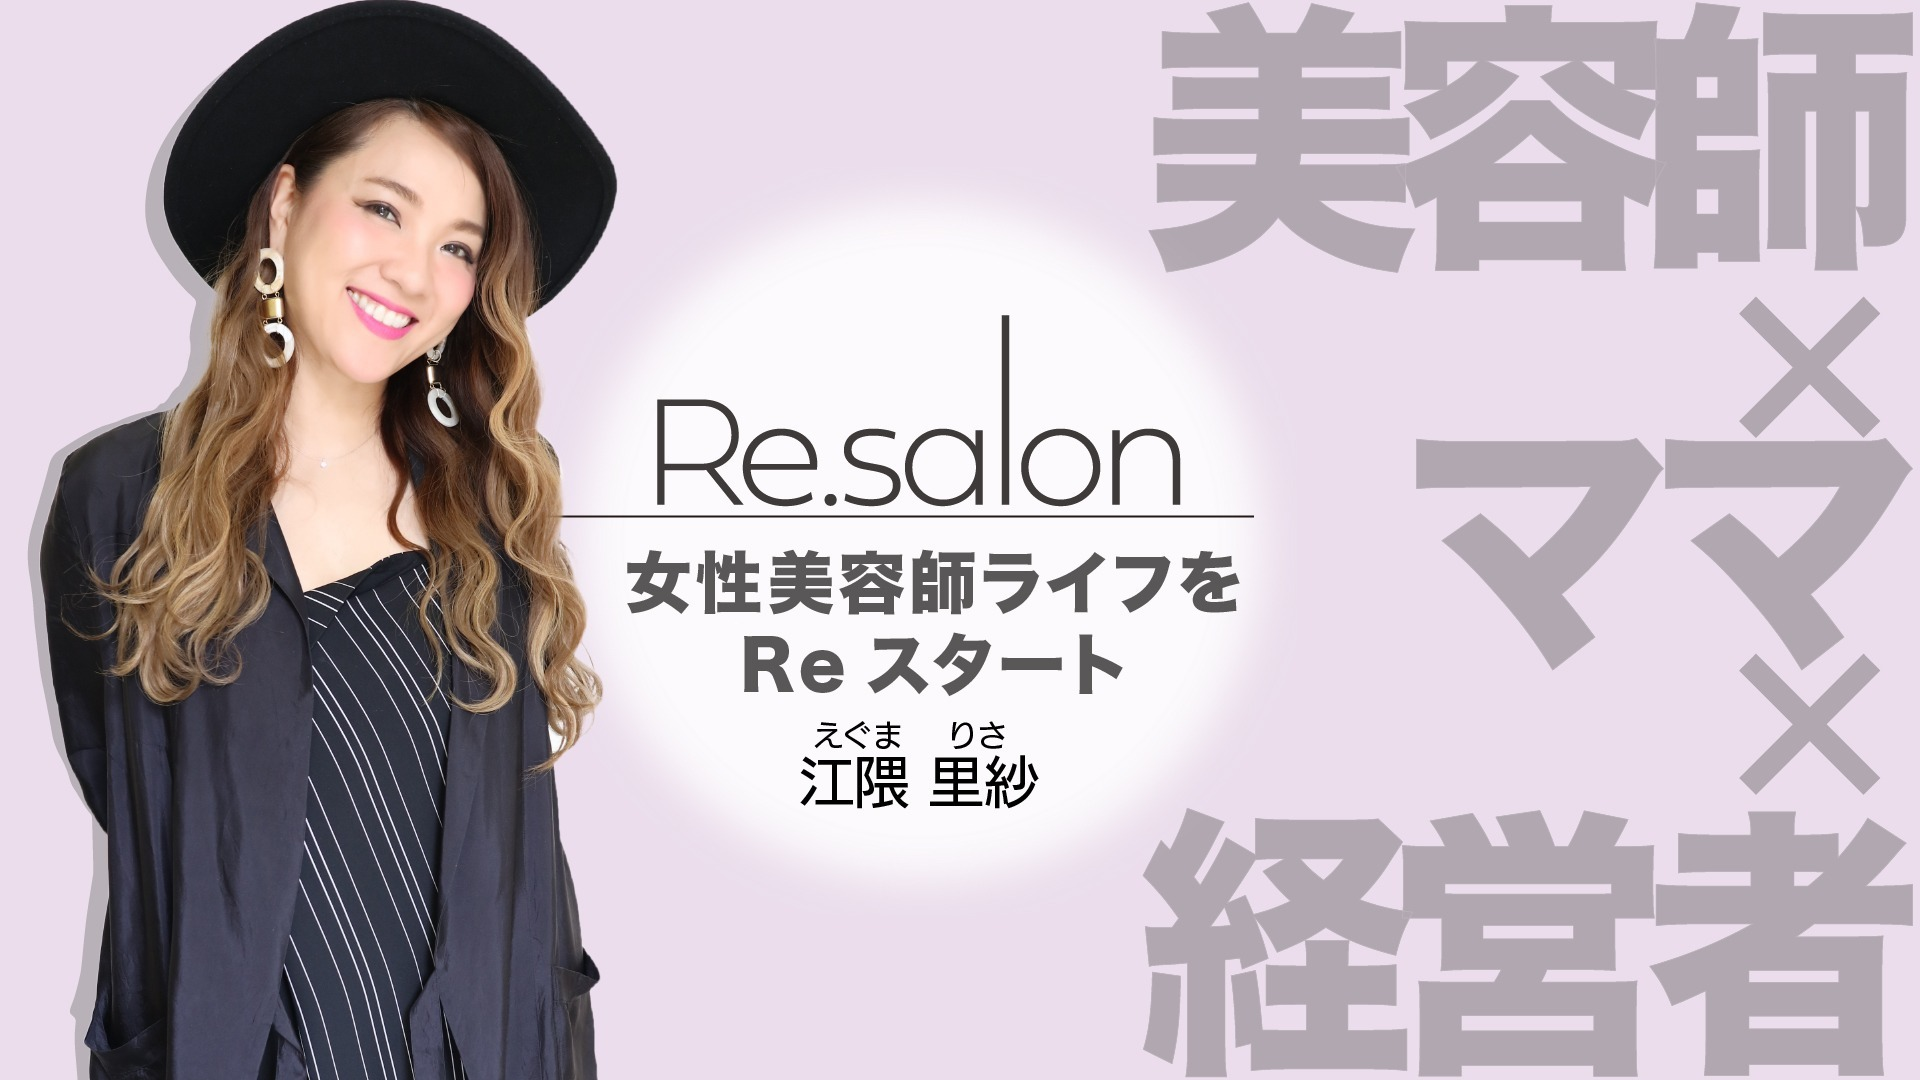 Re.salon